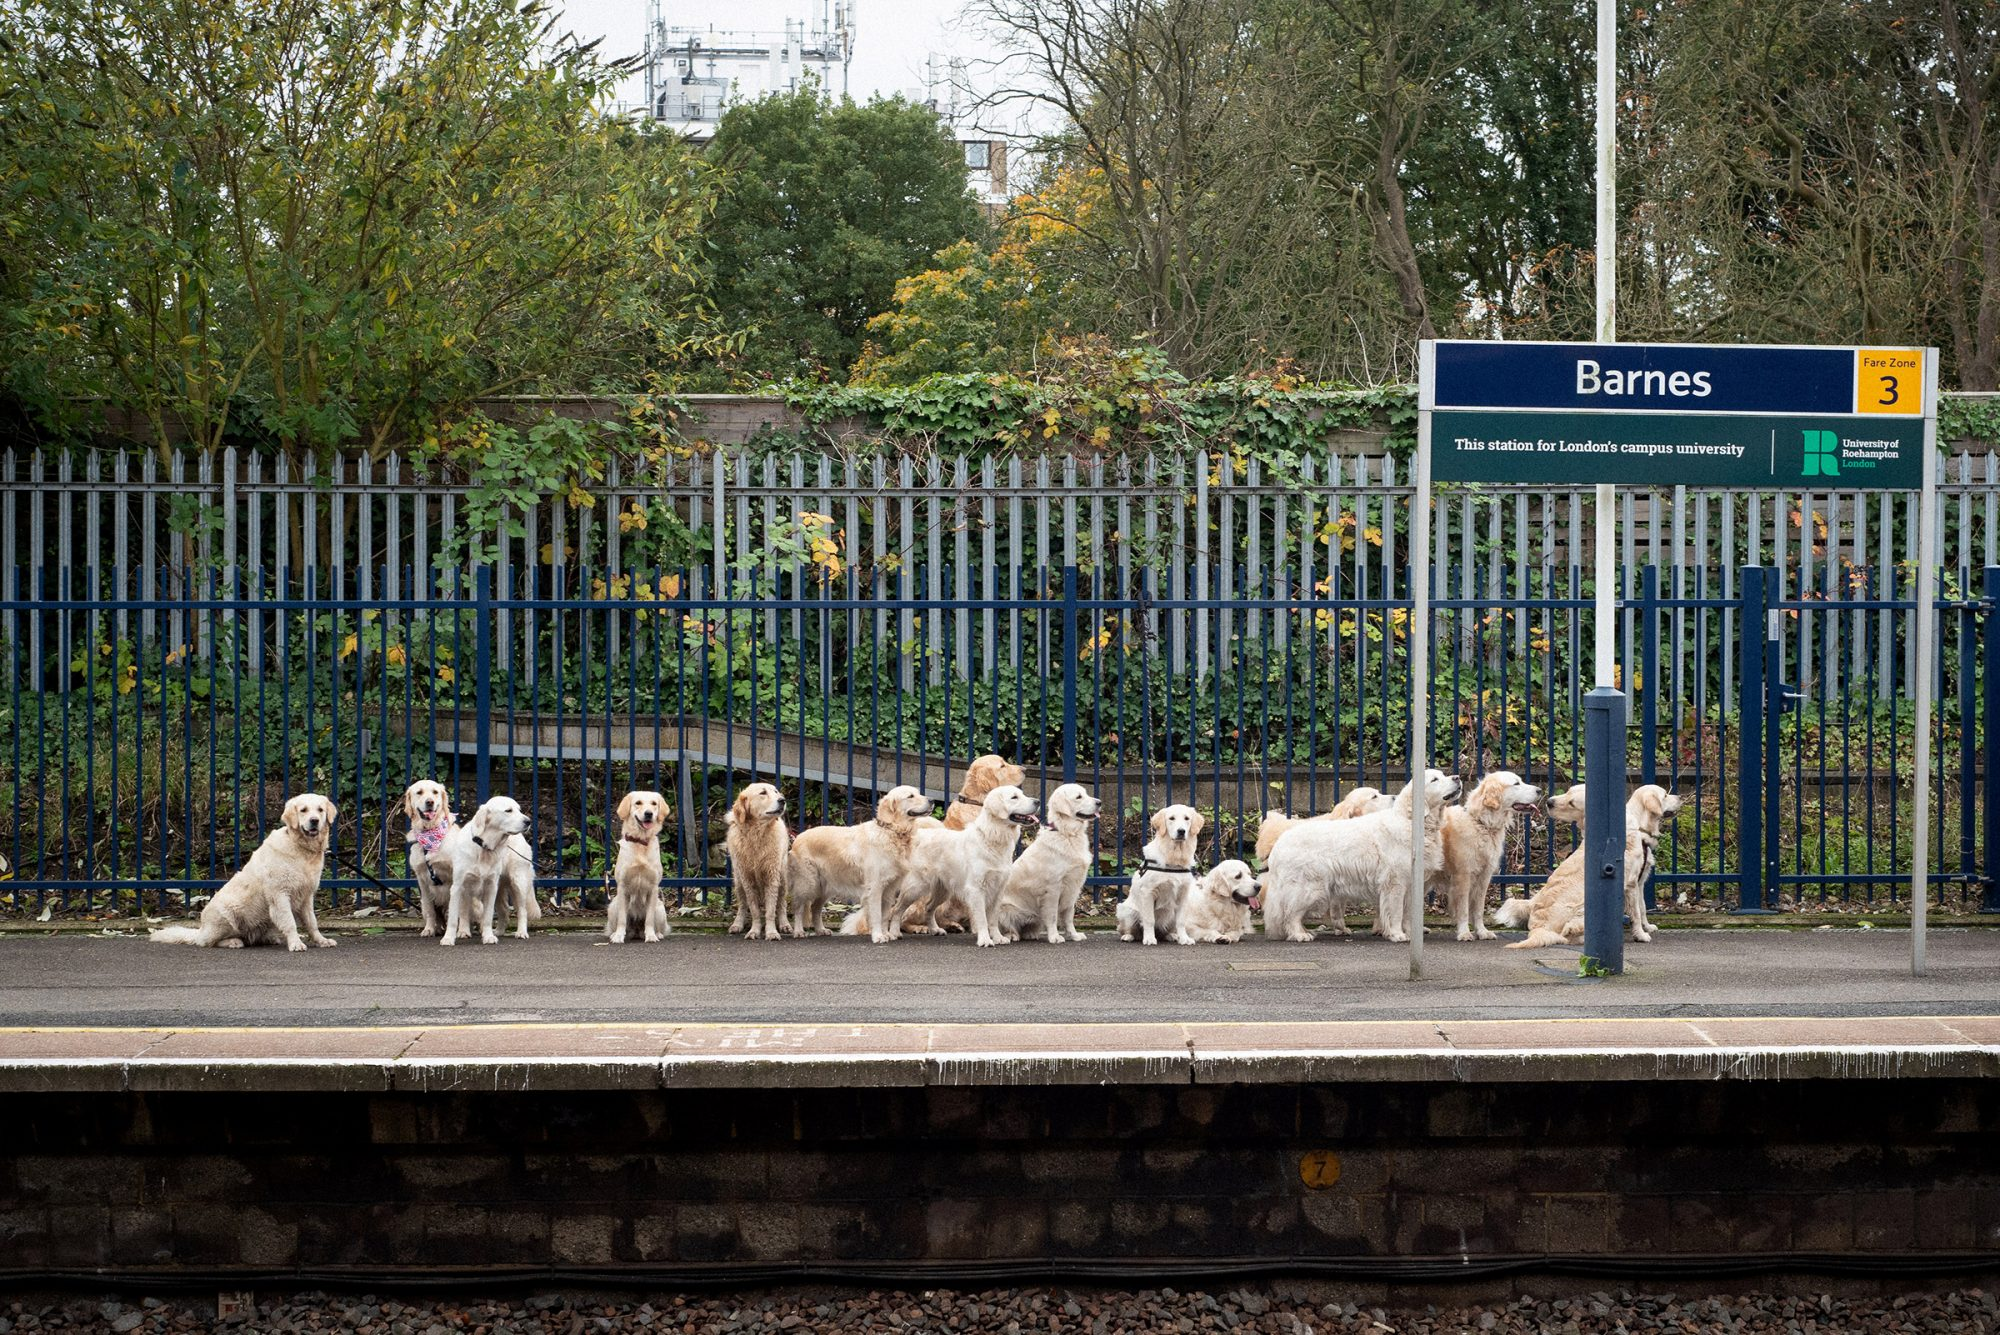 The dogs' cross a zebra crossing, inspired by the famous Abbey Road album cover from The Beatles. Morning commuters were left bemused when they saw a dozen golden retrievers queueing for the train at Barnes station in Richmond upon Thames - all part of a series of dog inspired pictures for a charity calendar. See National News story NNdogs. Commuters were gobsmacked when they saw more than a dozen dogs lined up on a train station platform. The adorable golden retrievers were not actually waiting for a train, but posing for photos to appear in a charity calendar. Passengers initially thought they were going barking mad, but were soon delighted to see so many well-groomed canine models on a platform. More than 30 thousand social media users liked the picture, at Barnes station, in Richmond upon Thames, which inspired scores of puppy puns. One called the scene a meeting of 'Very Important Puppies,' while another chipped in branding it the 'Andrex puppy reunion.'